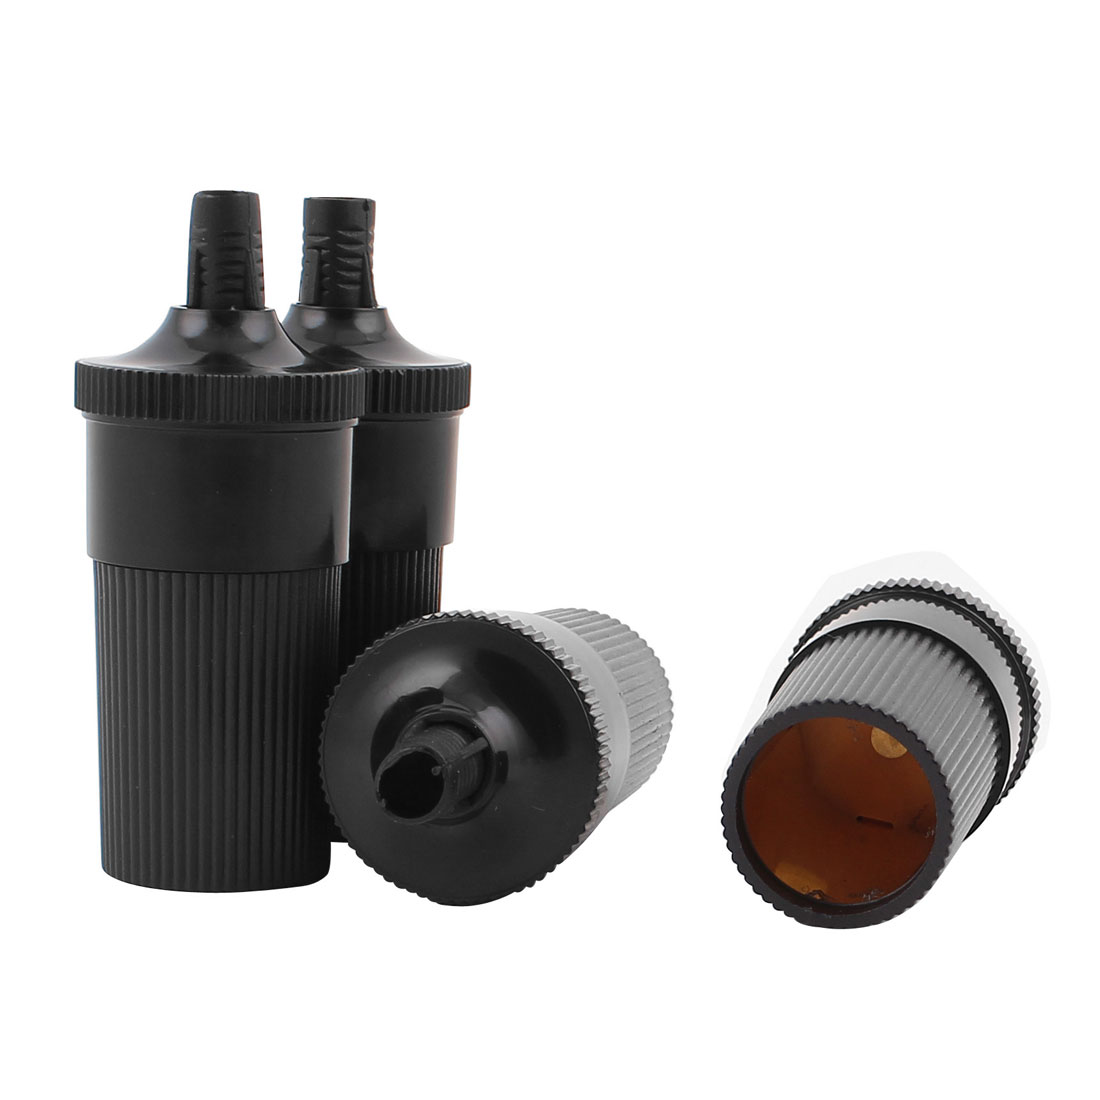 Car Vehicle Black Plastic Cylinder Power Charger Cigar Cigarette Lighter Socket 4Pcs